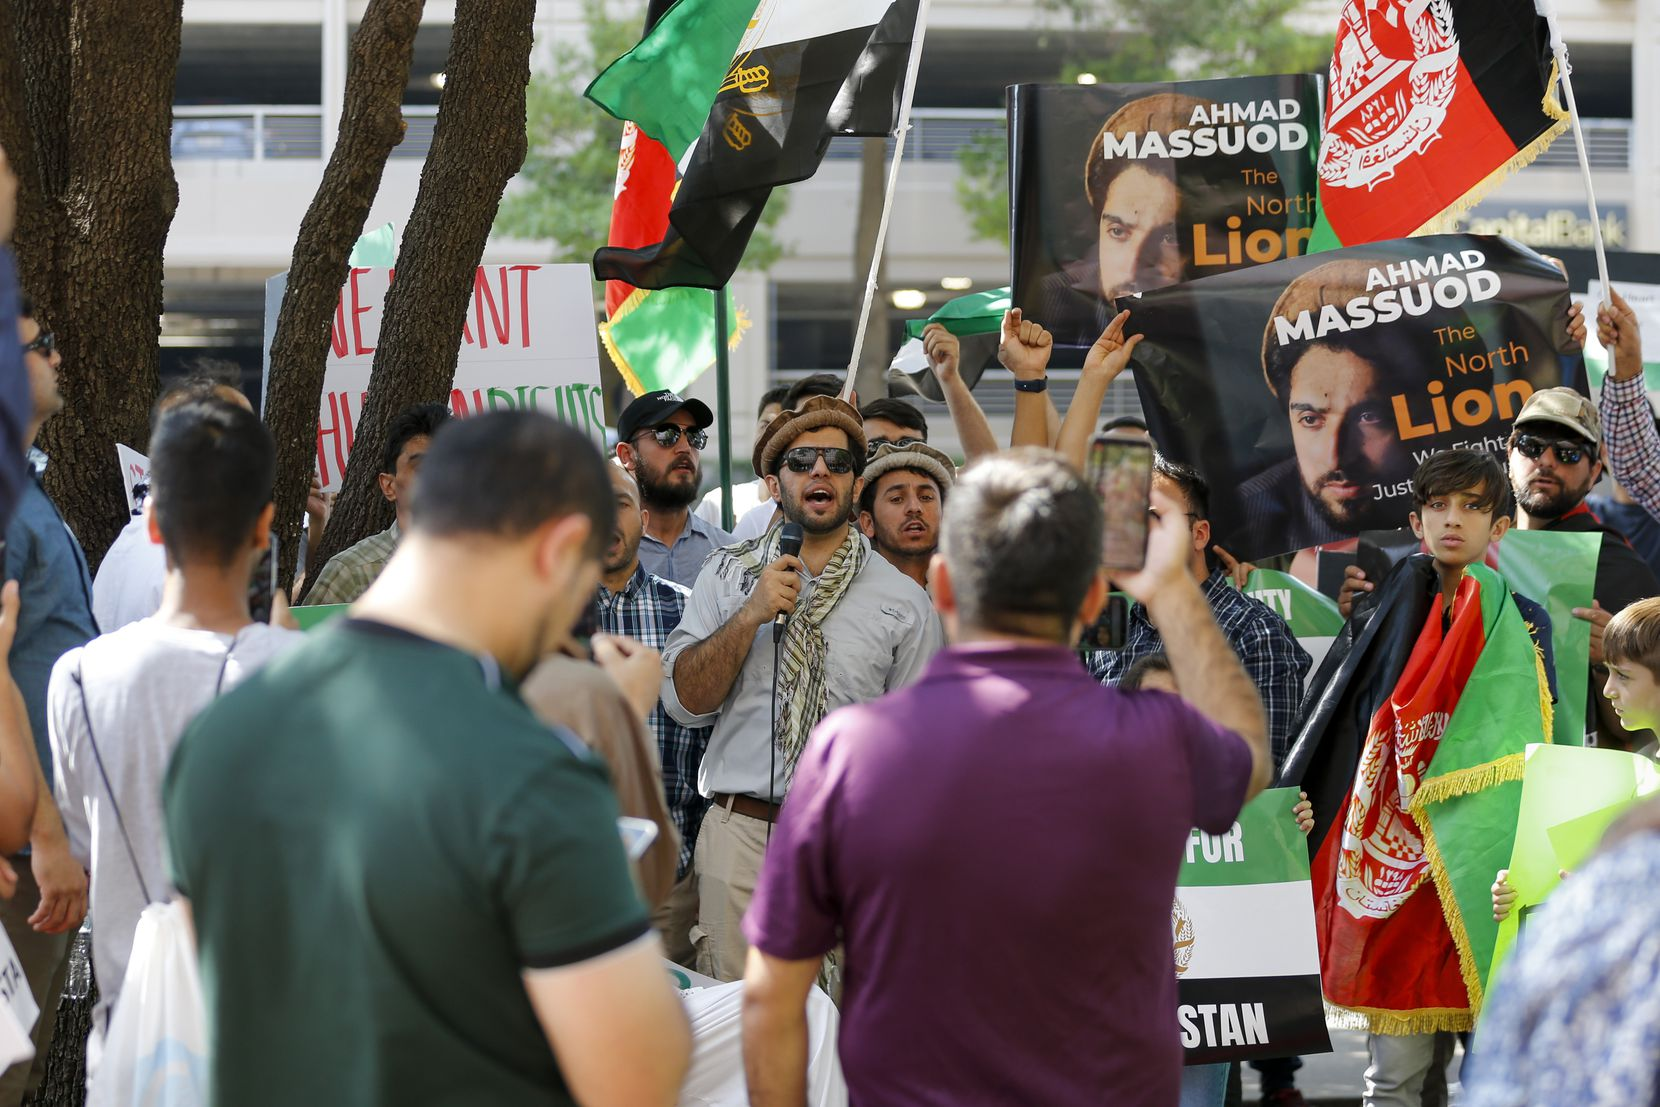 Basir Noory speaks to protesters during a demonstration outside of Sen. John Cornyn's office on Tuesday, Sept. 7, 2021, in Dallas. Protesters rallied in support of the resistance movement to the Taliban takeover in Afghanistan.